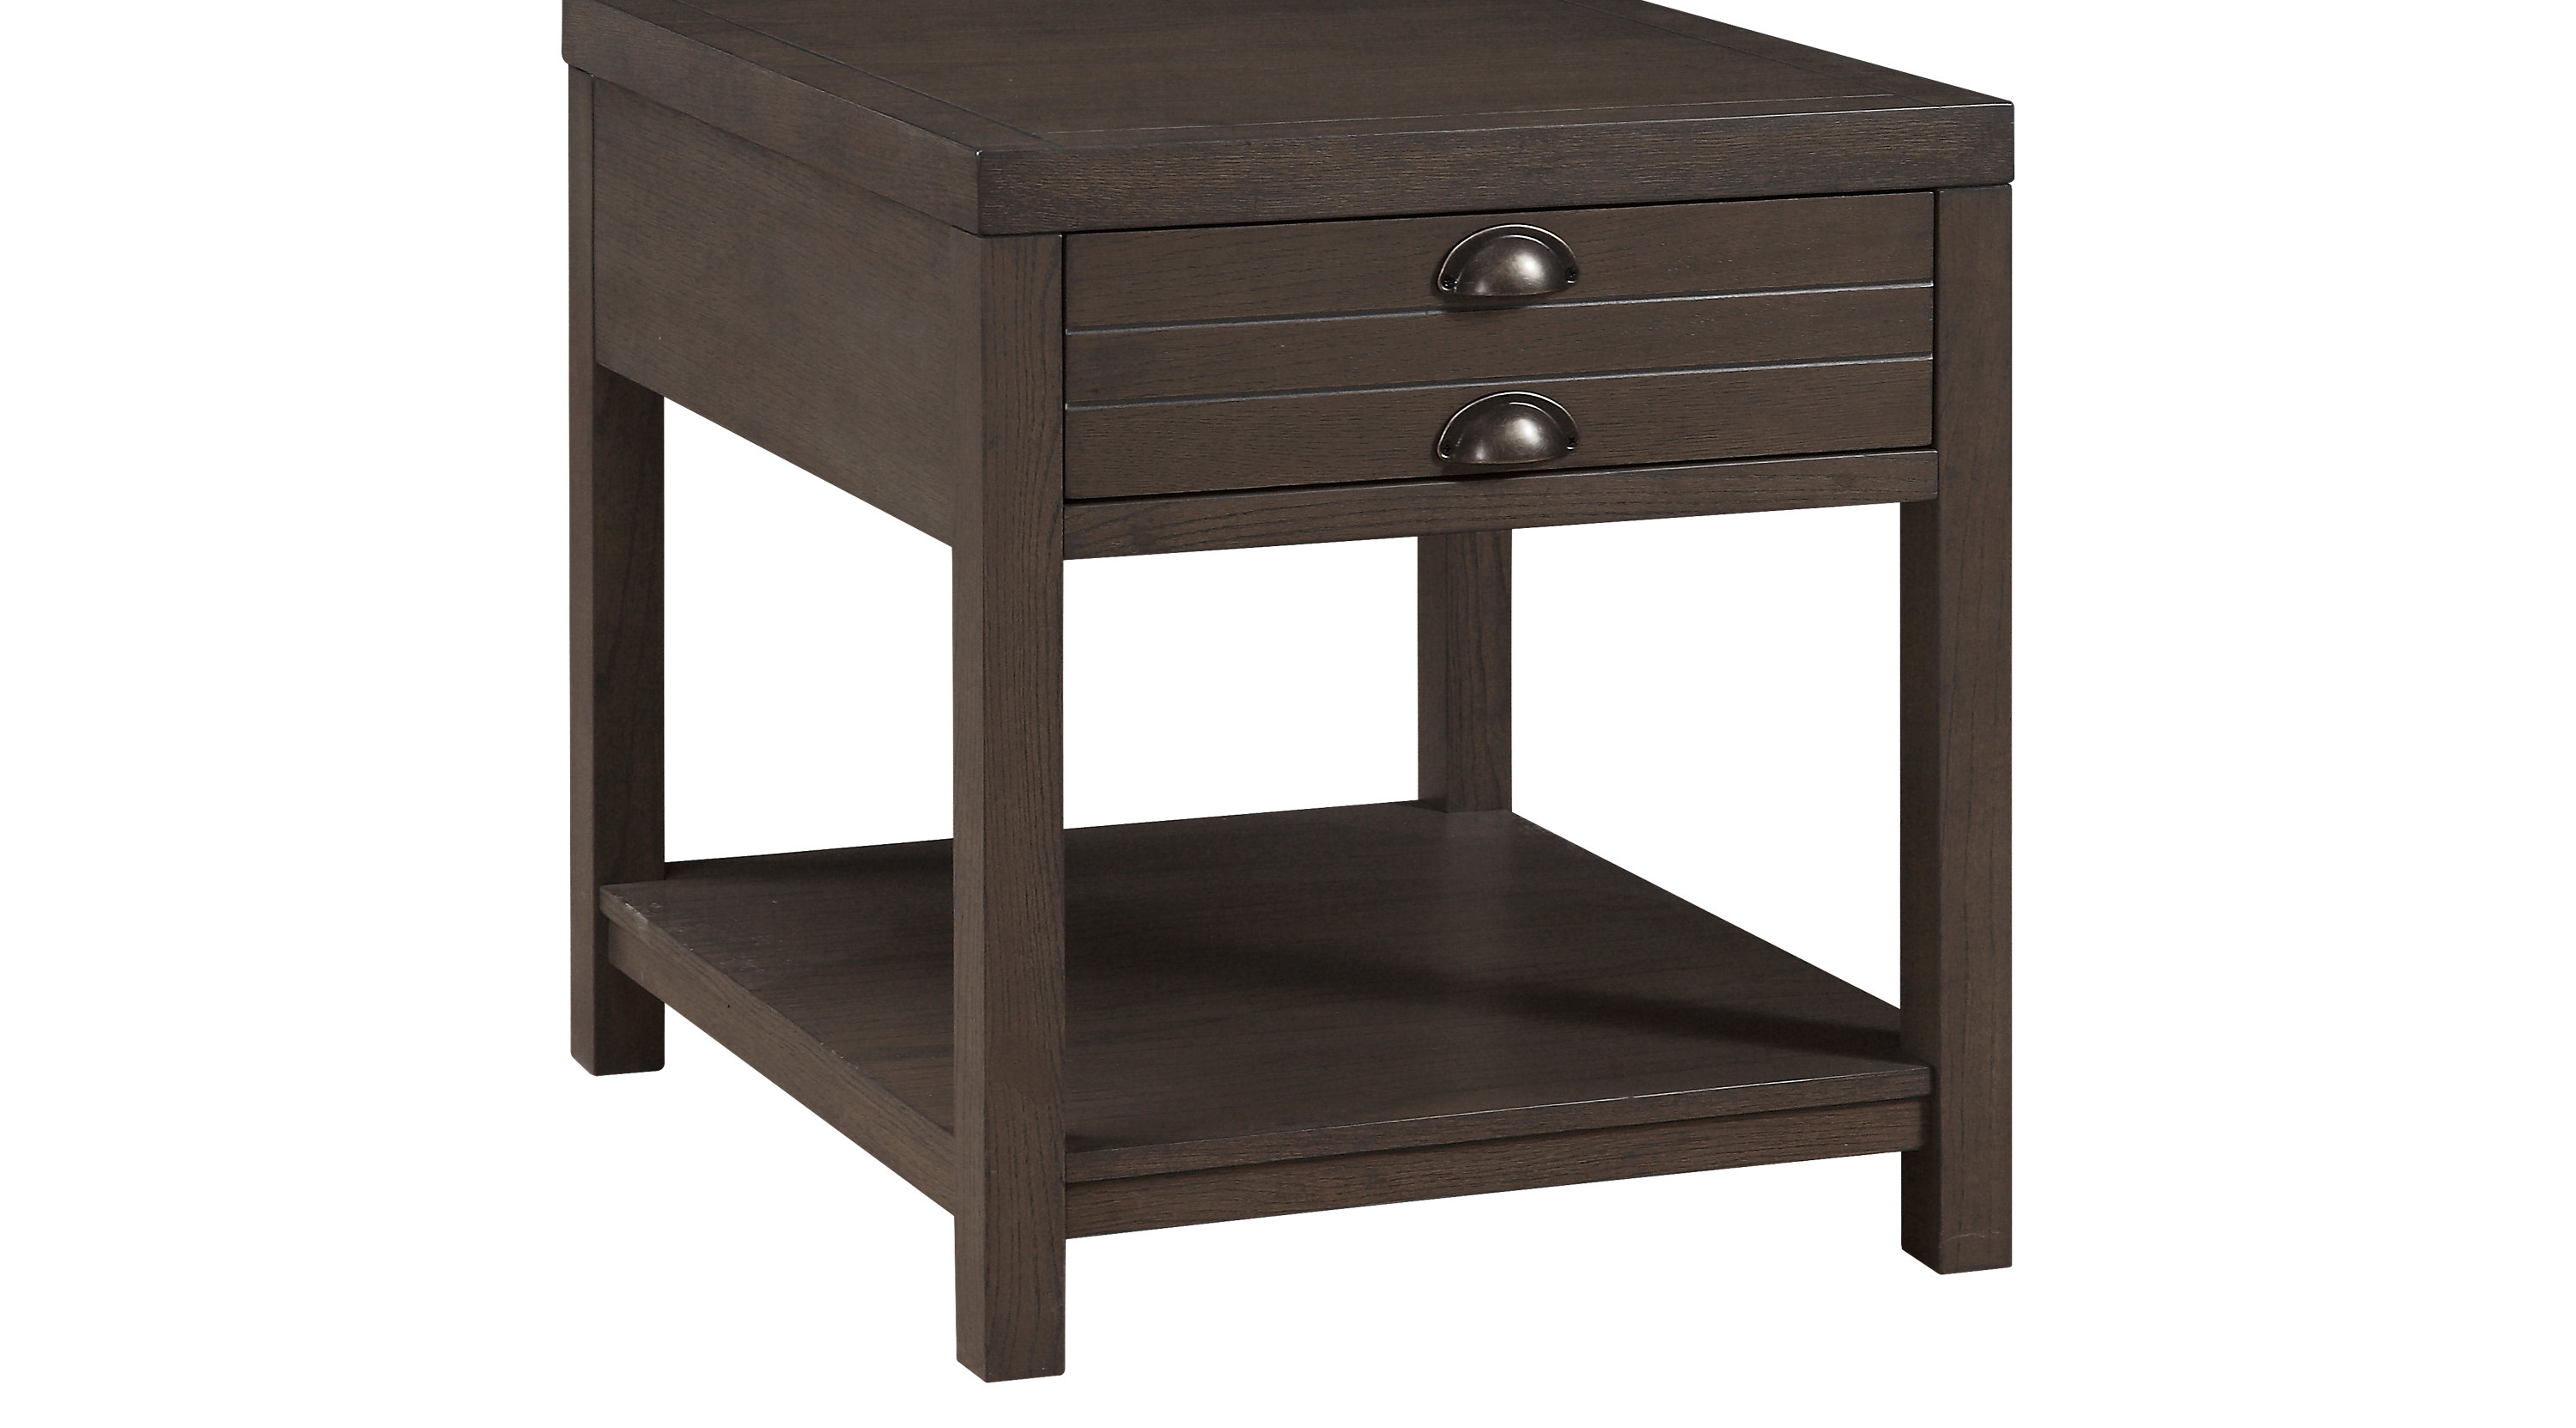 end table height how tall should mandal brown mini accent clear chair laminate floor trim leather living room sets design round glass top lamp tables rectangle lewis wood low